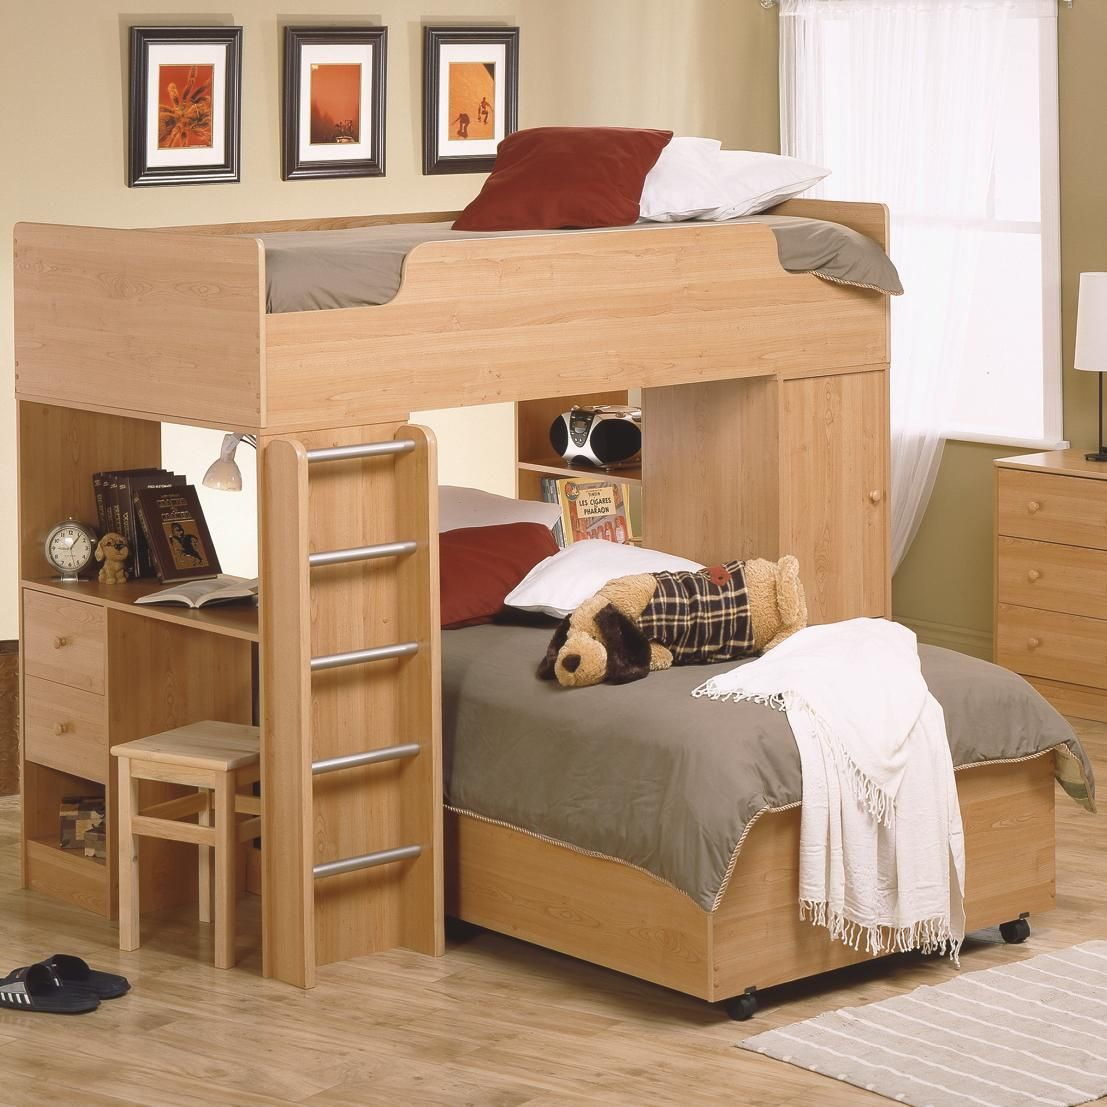 This company has some pretty awesome bunk beds. Just